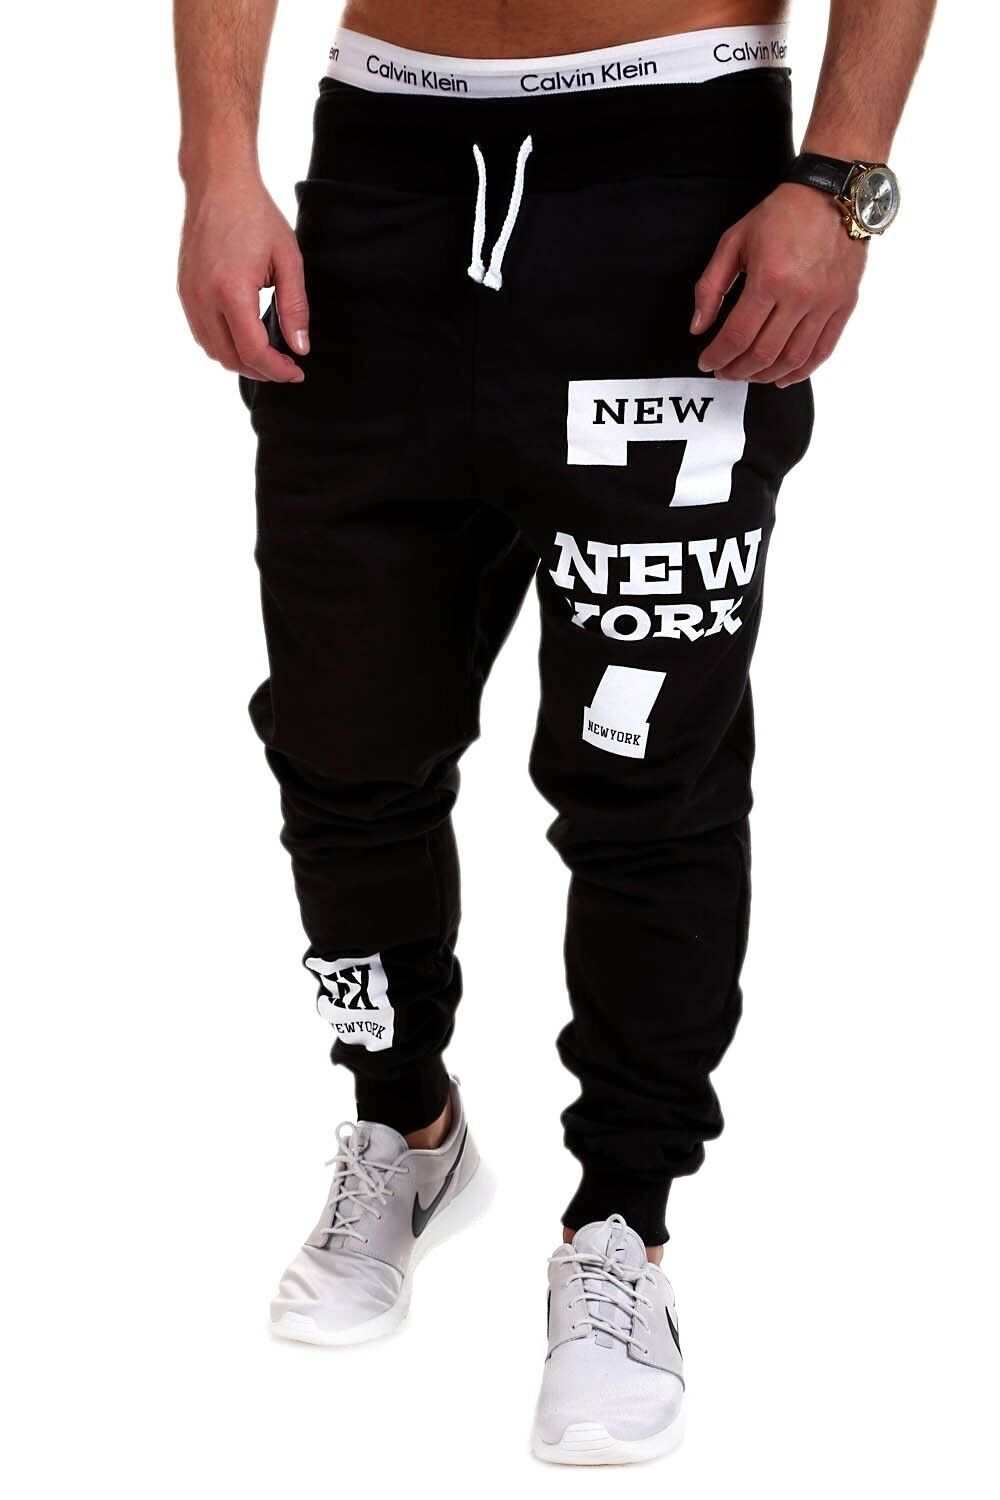 Clothing Shoes Accessories Pantalones Modernos Para Hombres Casual Pantalones Deportivos Comodos Sweatpants Pants